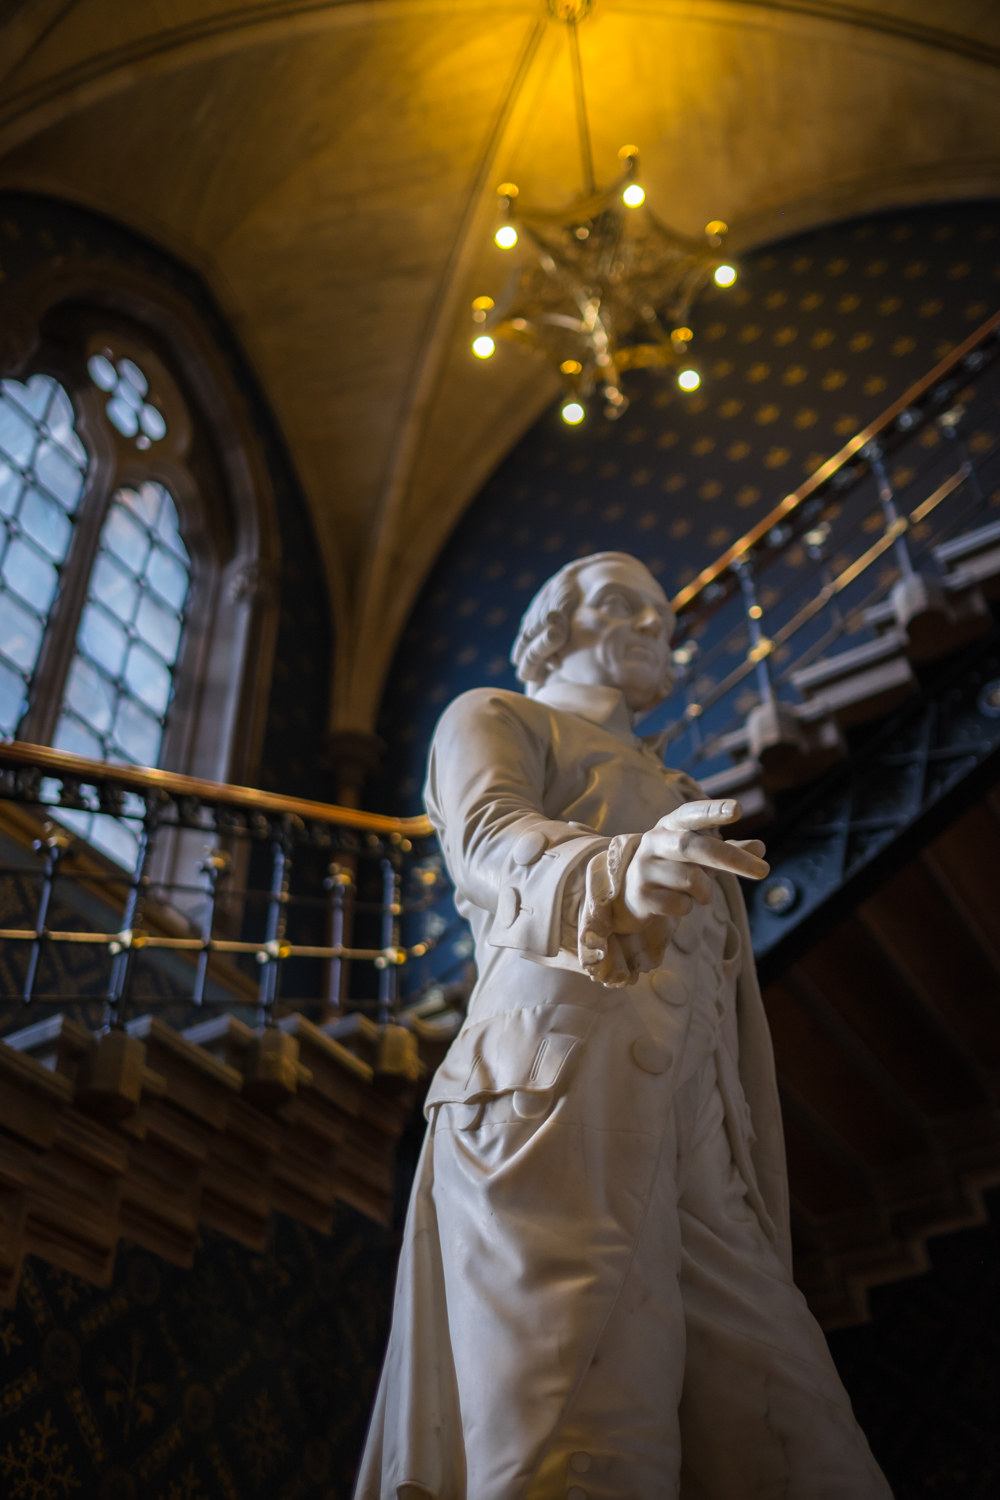 The Mysterious Statue of Adam Smith